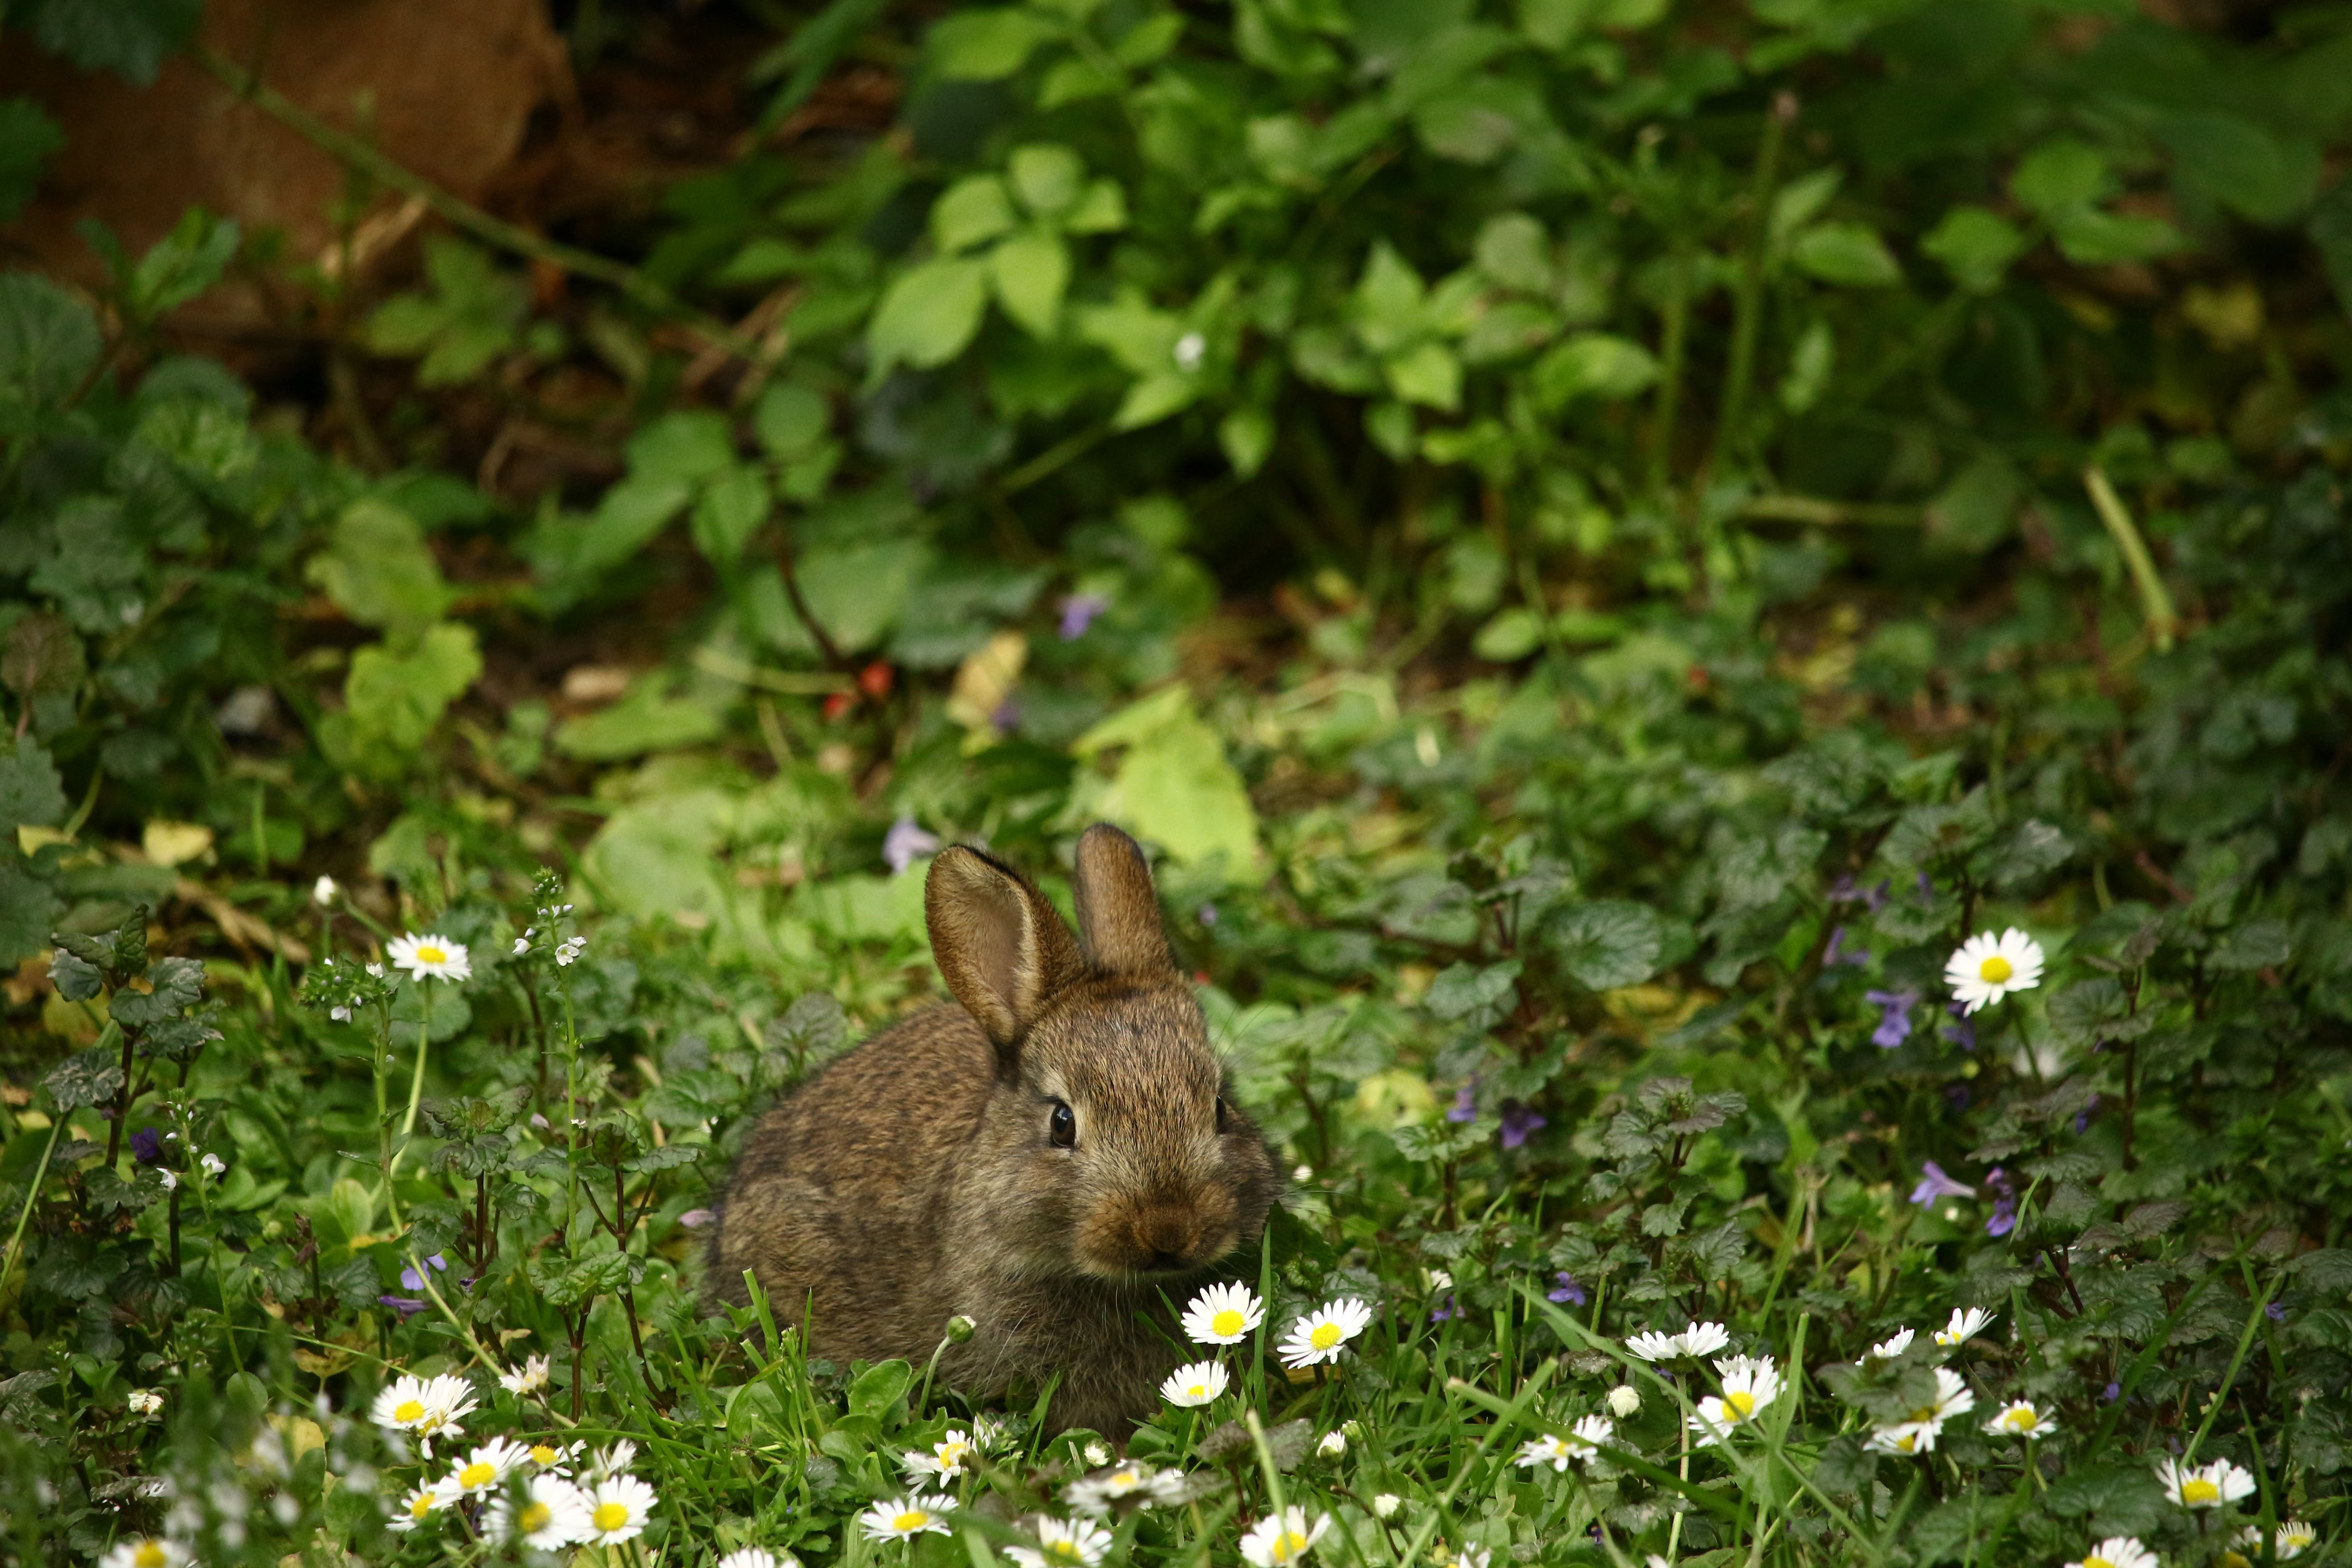 Brown Rabbit in Front of White Daisies